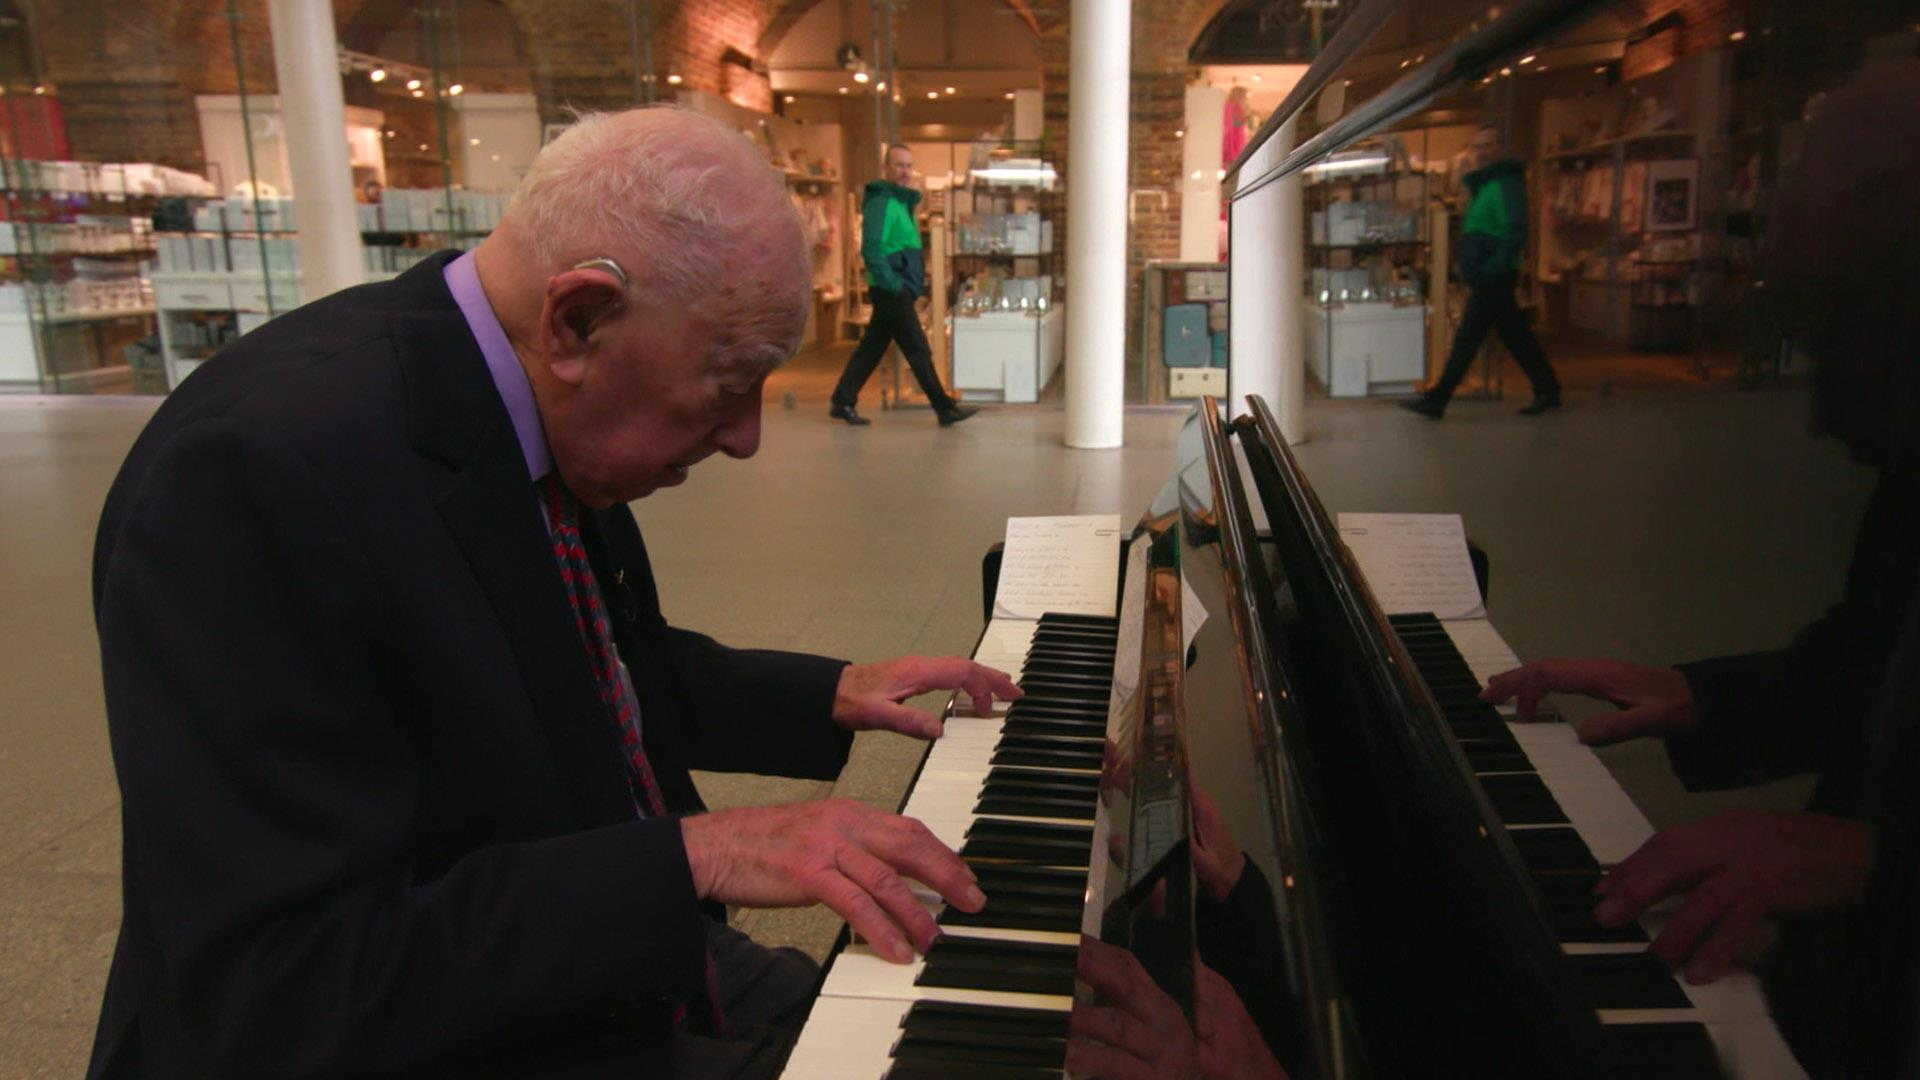 Denis Robinson, 91, entertains travelers on a street piano at London's St. Pancras station